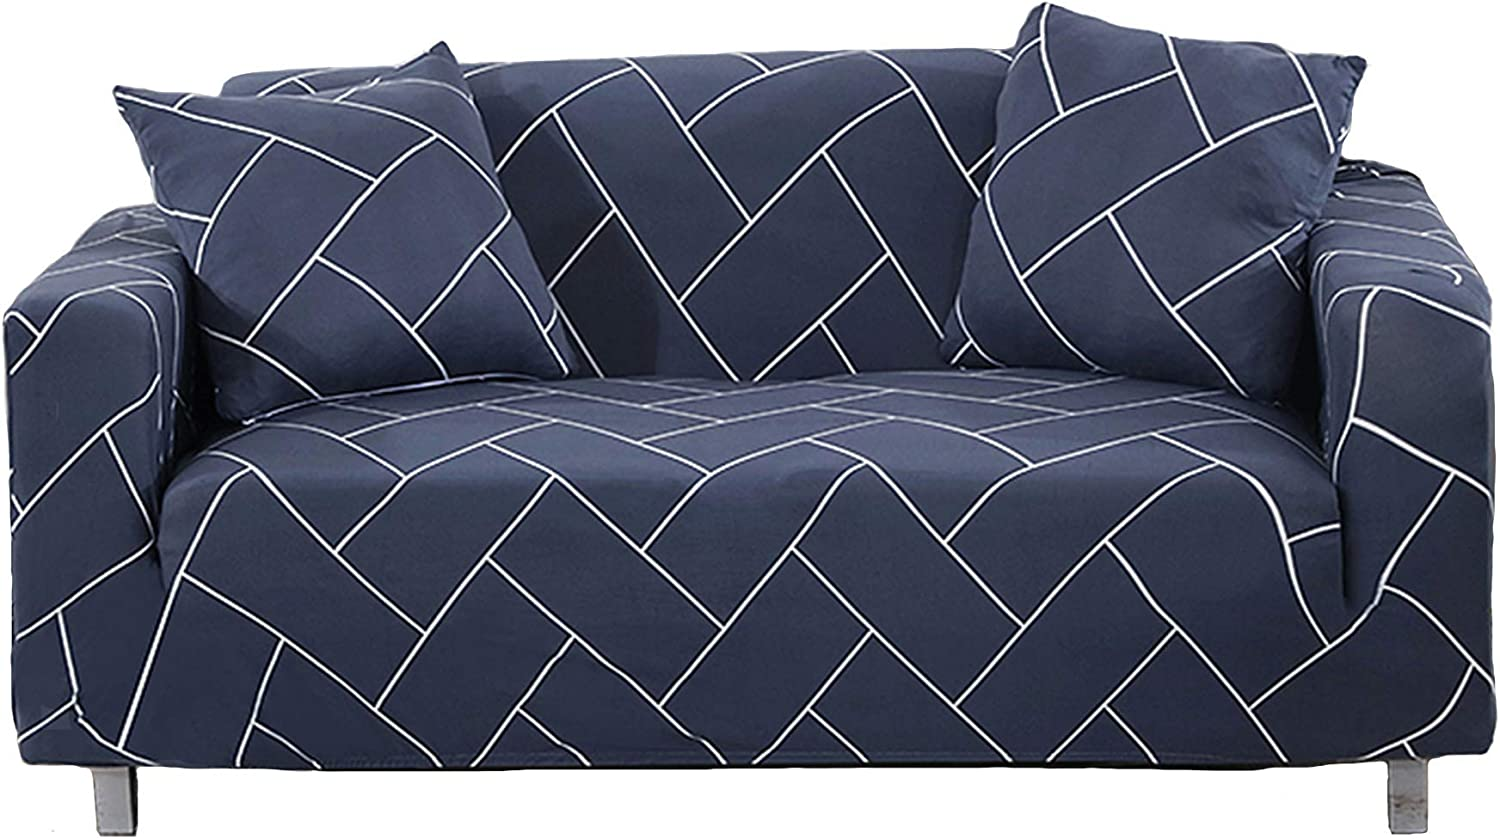 Novelome Soft Fitted Stretch Sofa Slipcover - Stylish Modern Pattern Designs - Furniture Couch Protector Include Pillow Cases – All Seasons Fall Winter Spring Summer (Navy, Three Seaters)